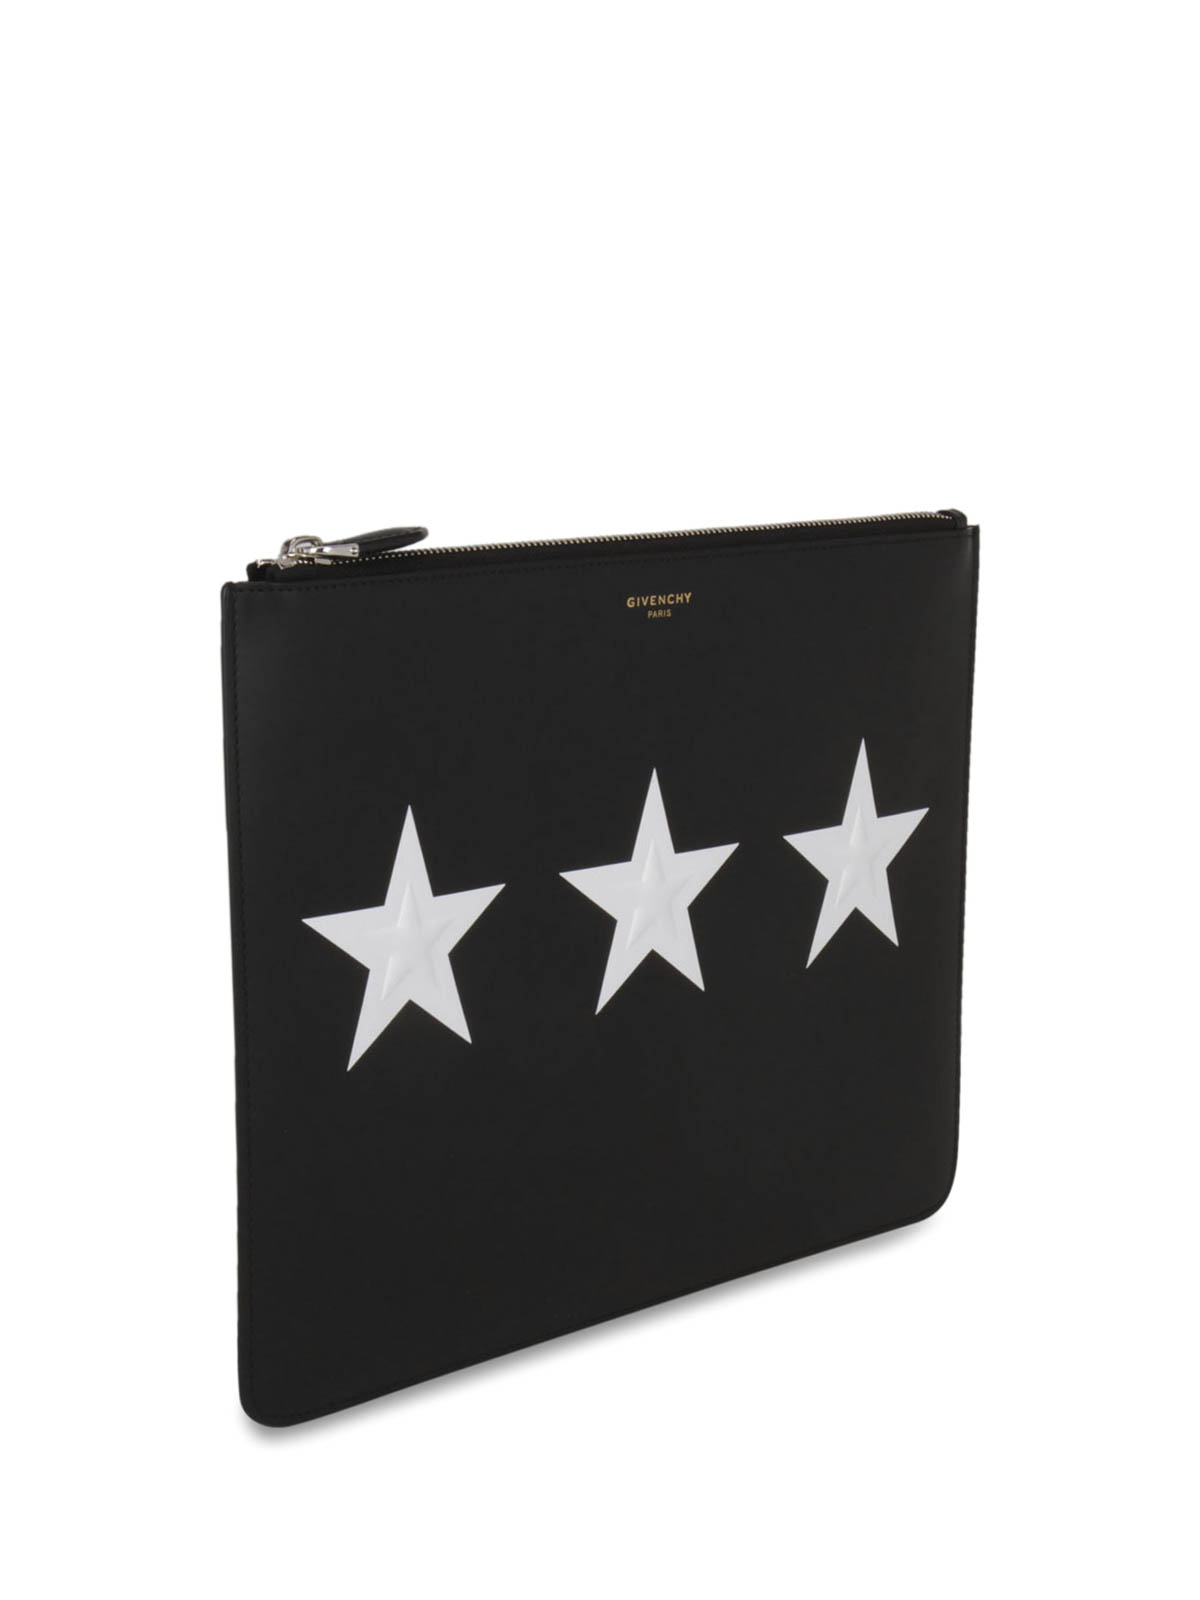 be20175c421 Givenchy - Star print leather clutch - clutches - BK06072266 001